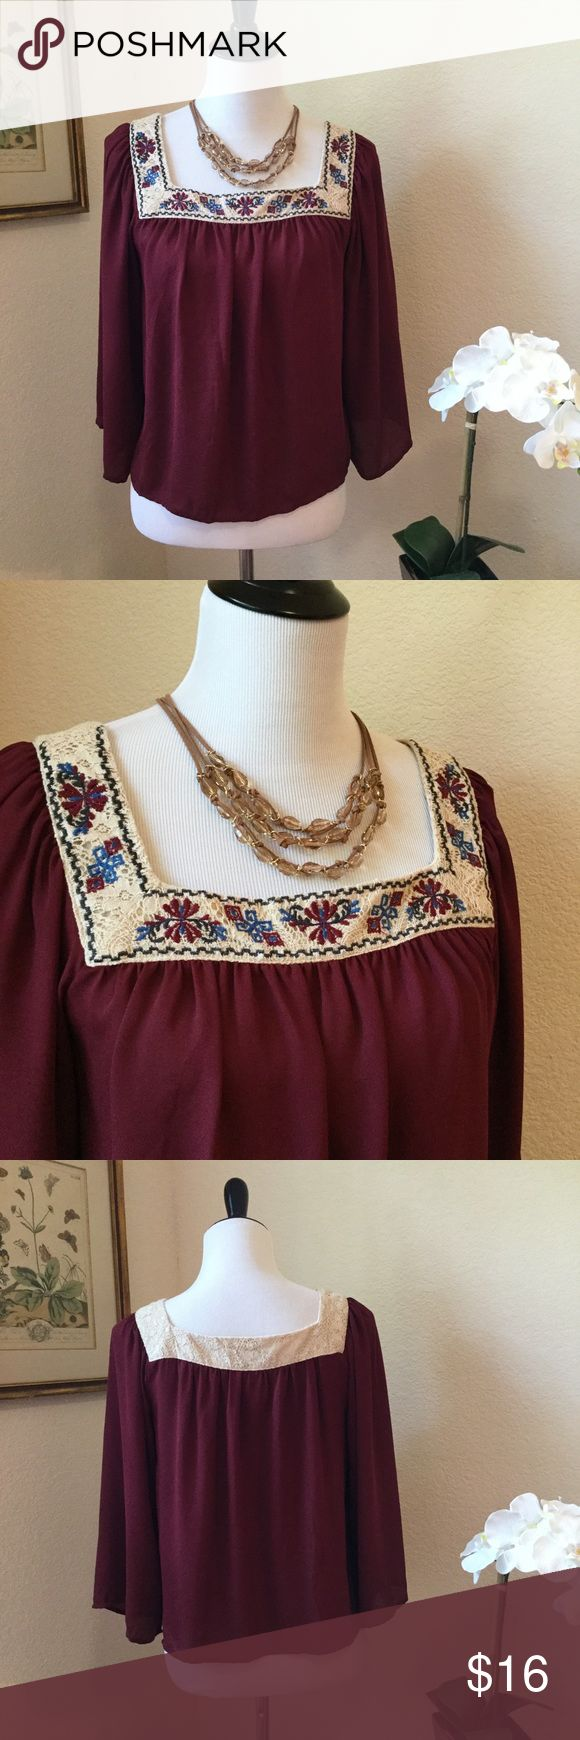 FLYING TOMATO Lace & Embroidery Peasant Top Beautiful flowing festival blouse in a rich burgundy color accented with ivory lace and floral embroidery. This top has a square neckline, wide sleeves and a flowing shorter length body. Wear with to a summer concert with denim shorts. In excellent condition. Flying Tomato Tops Blouses